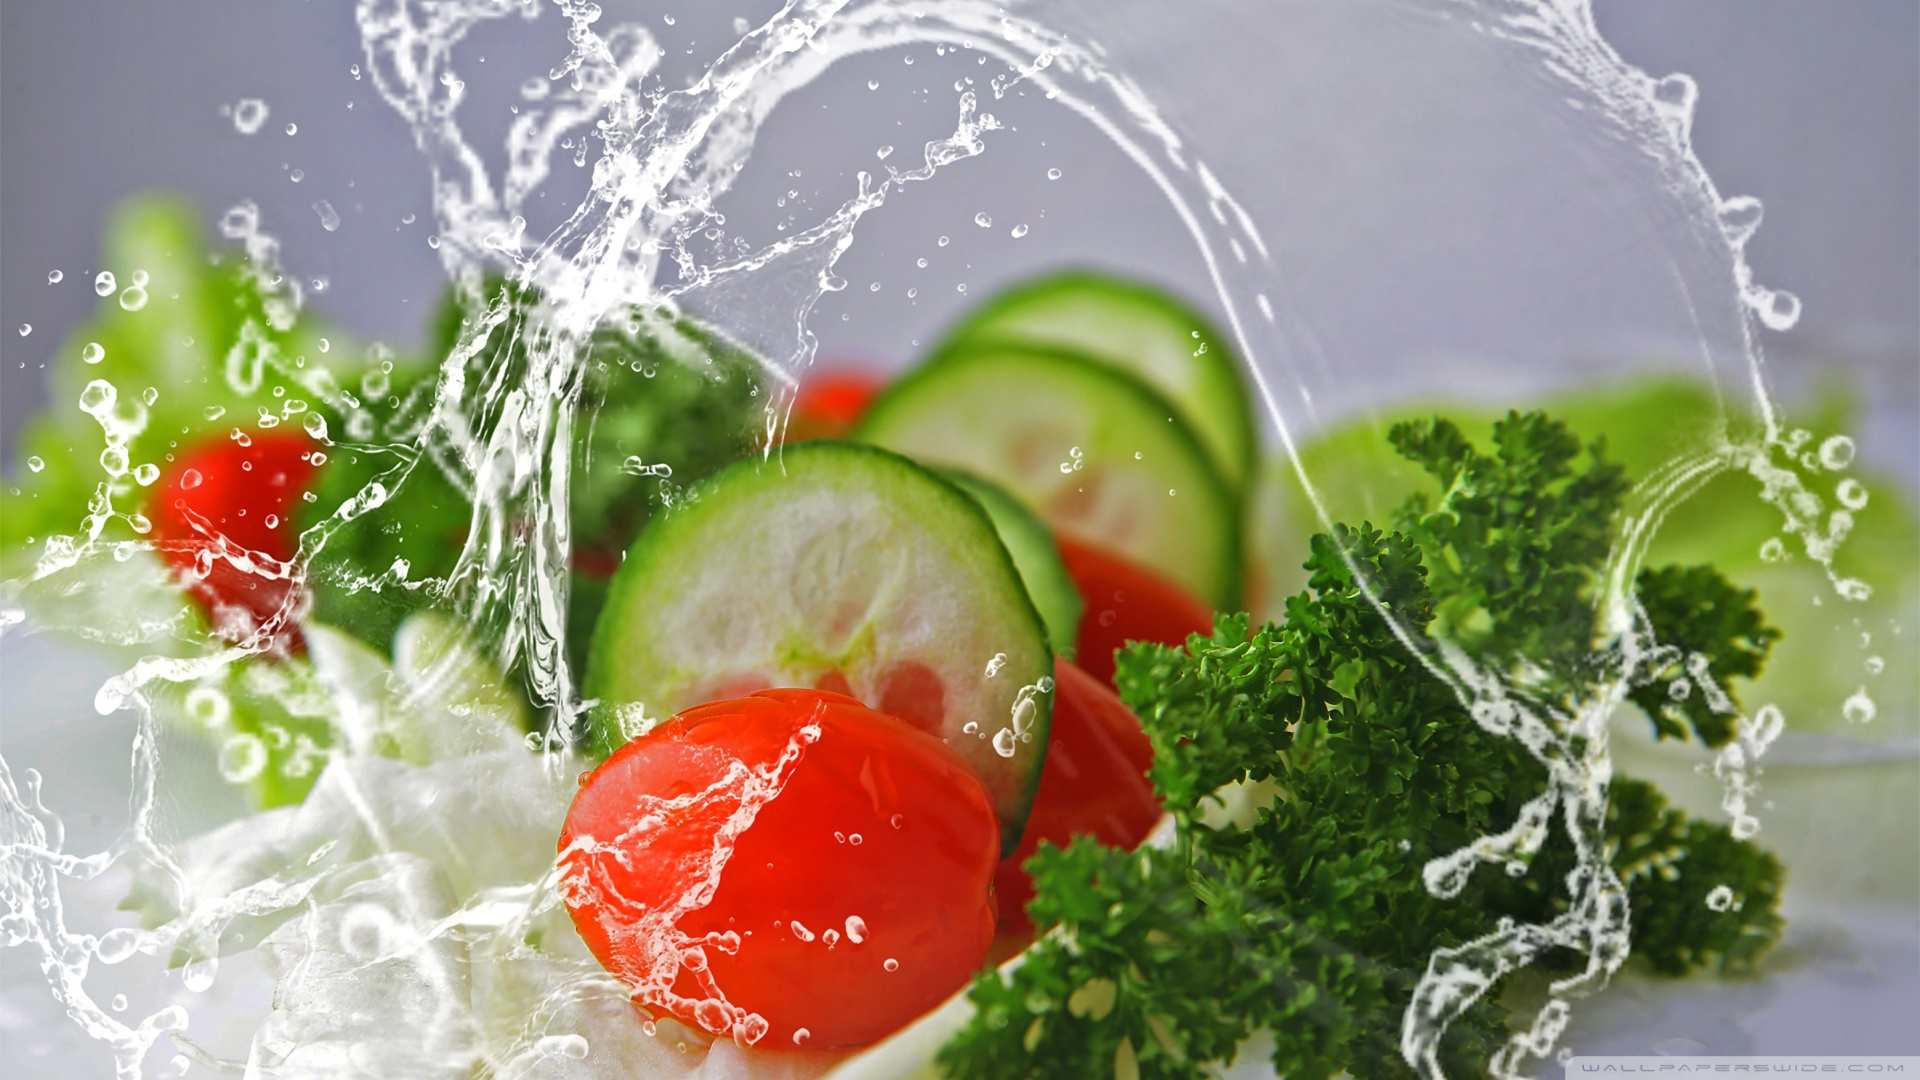 fresh_food-wallpaper-1920x1080.jpg